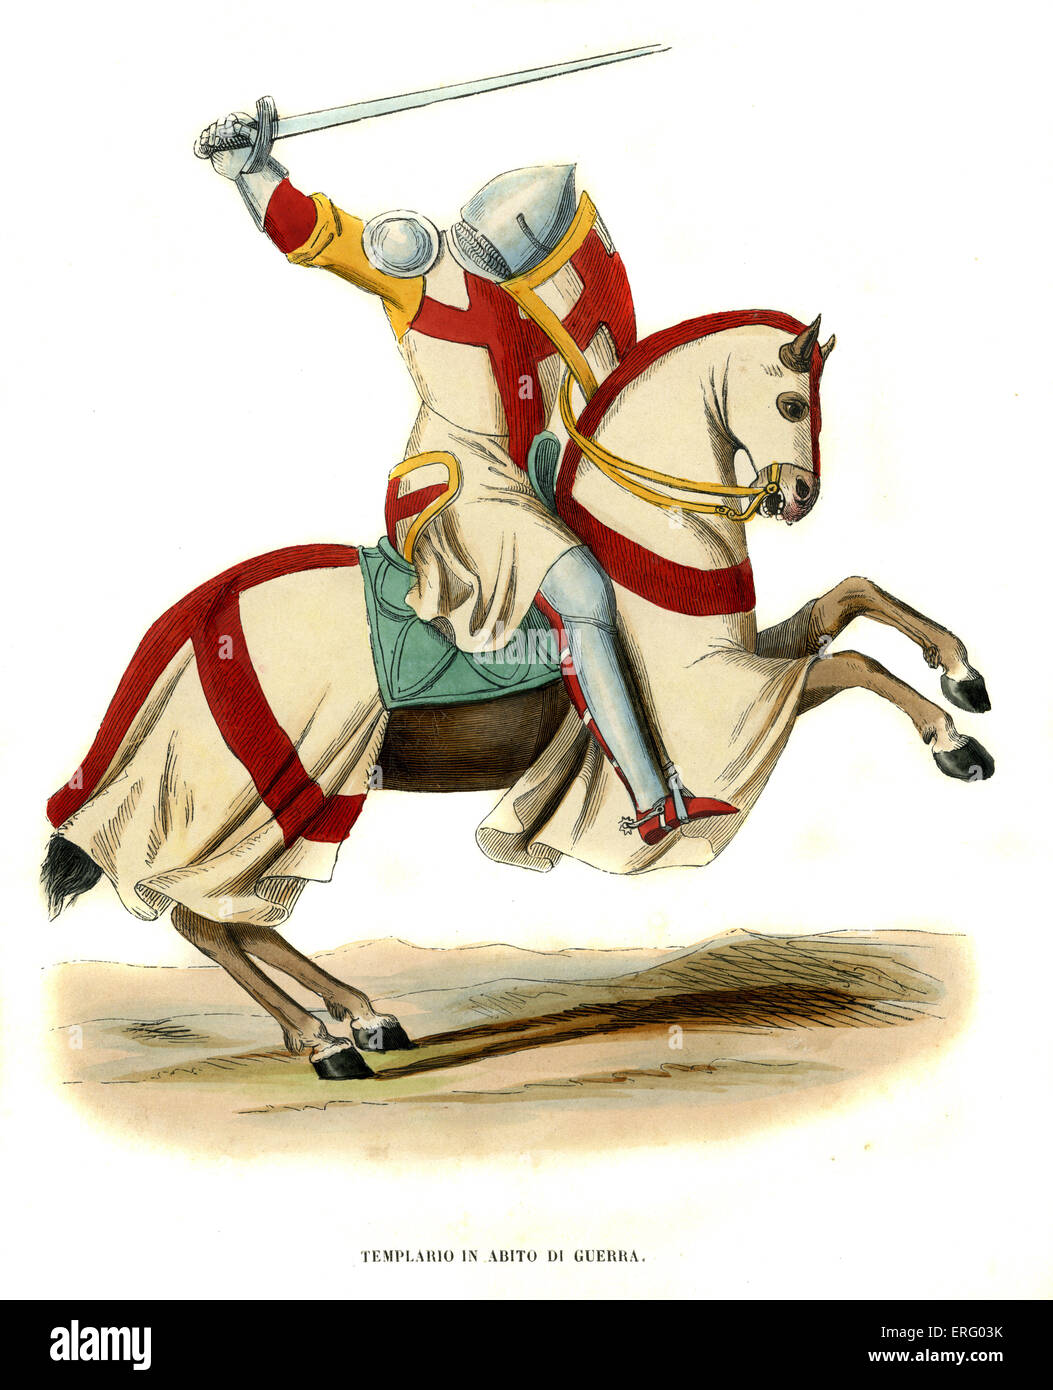 Templar knight on his horse ready for battle. At the time of the Crusades.  Hand coloured engraving-    c. 1847 - Stock Image